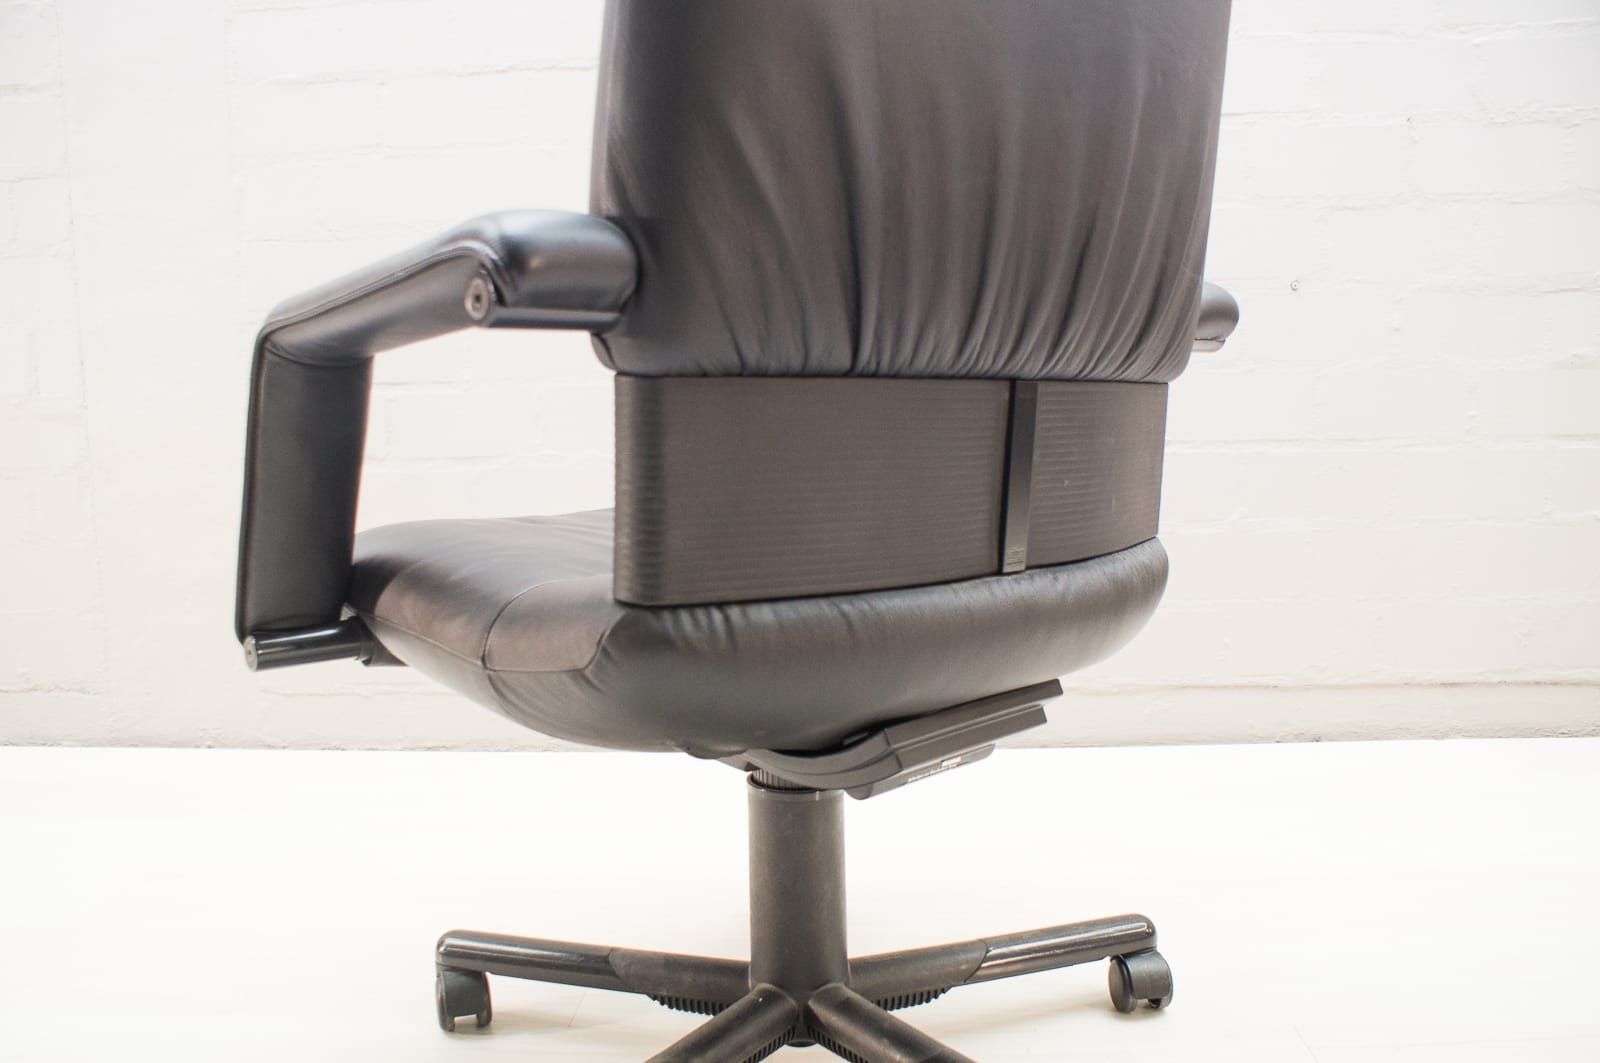 Vitra Chair Figura Mario Bellini Vintage Figura Ii Office Chair In Leather By Mario Bellini For Vitra